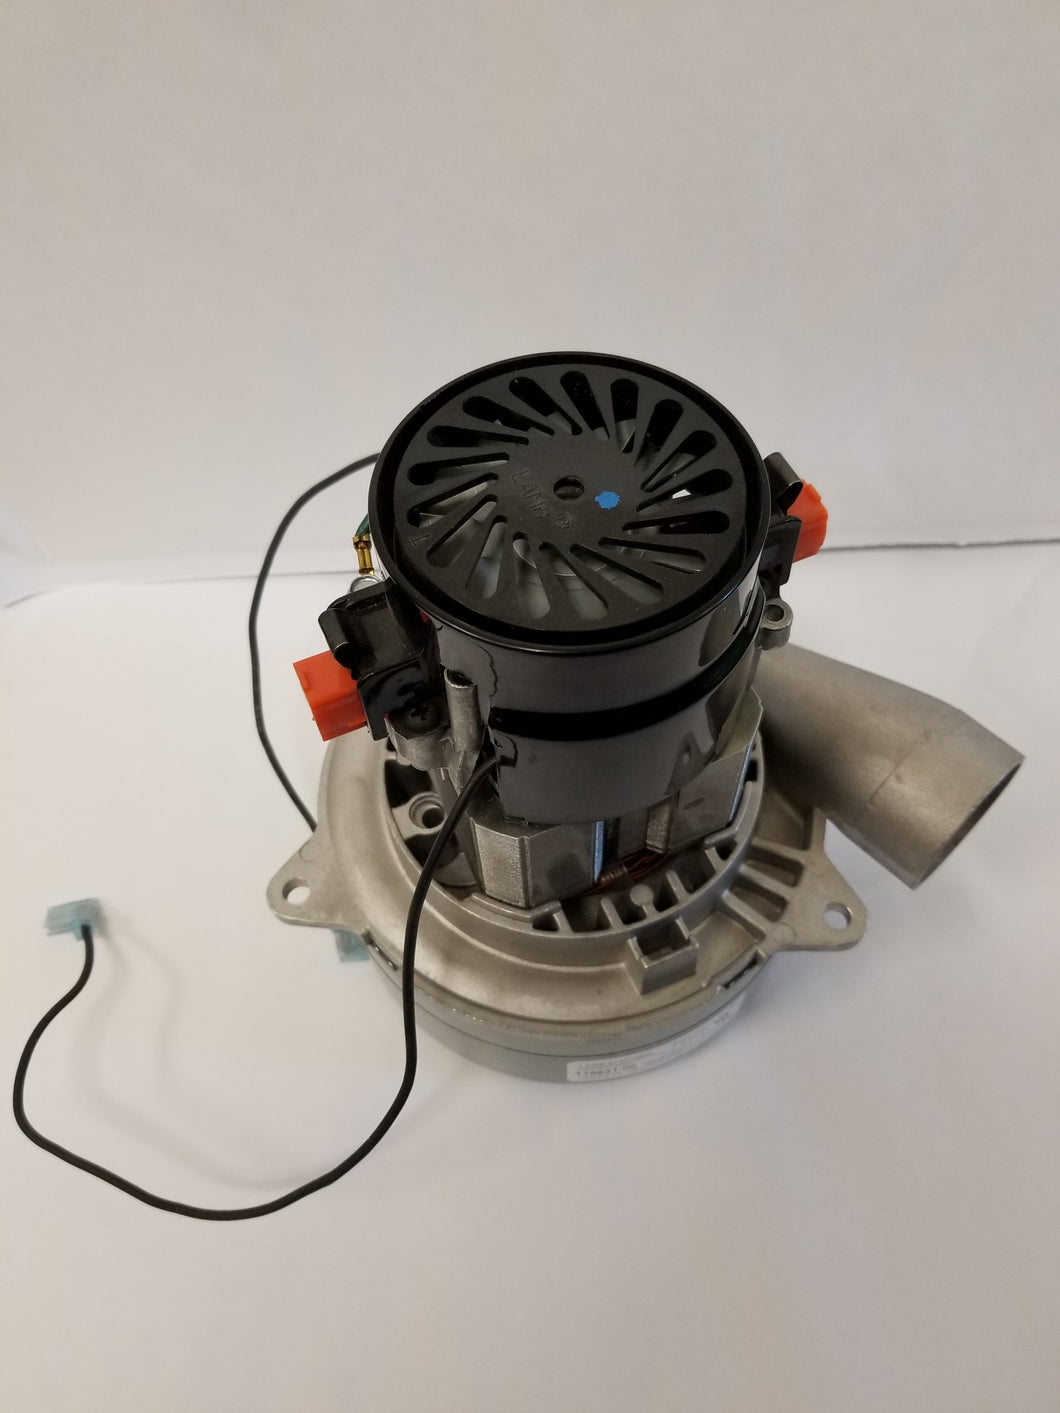 2 Stage 5.7 in. Conical Fan Blade Motor for Central Vacuums